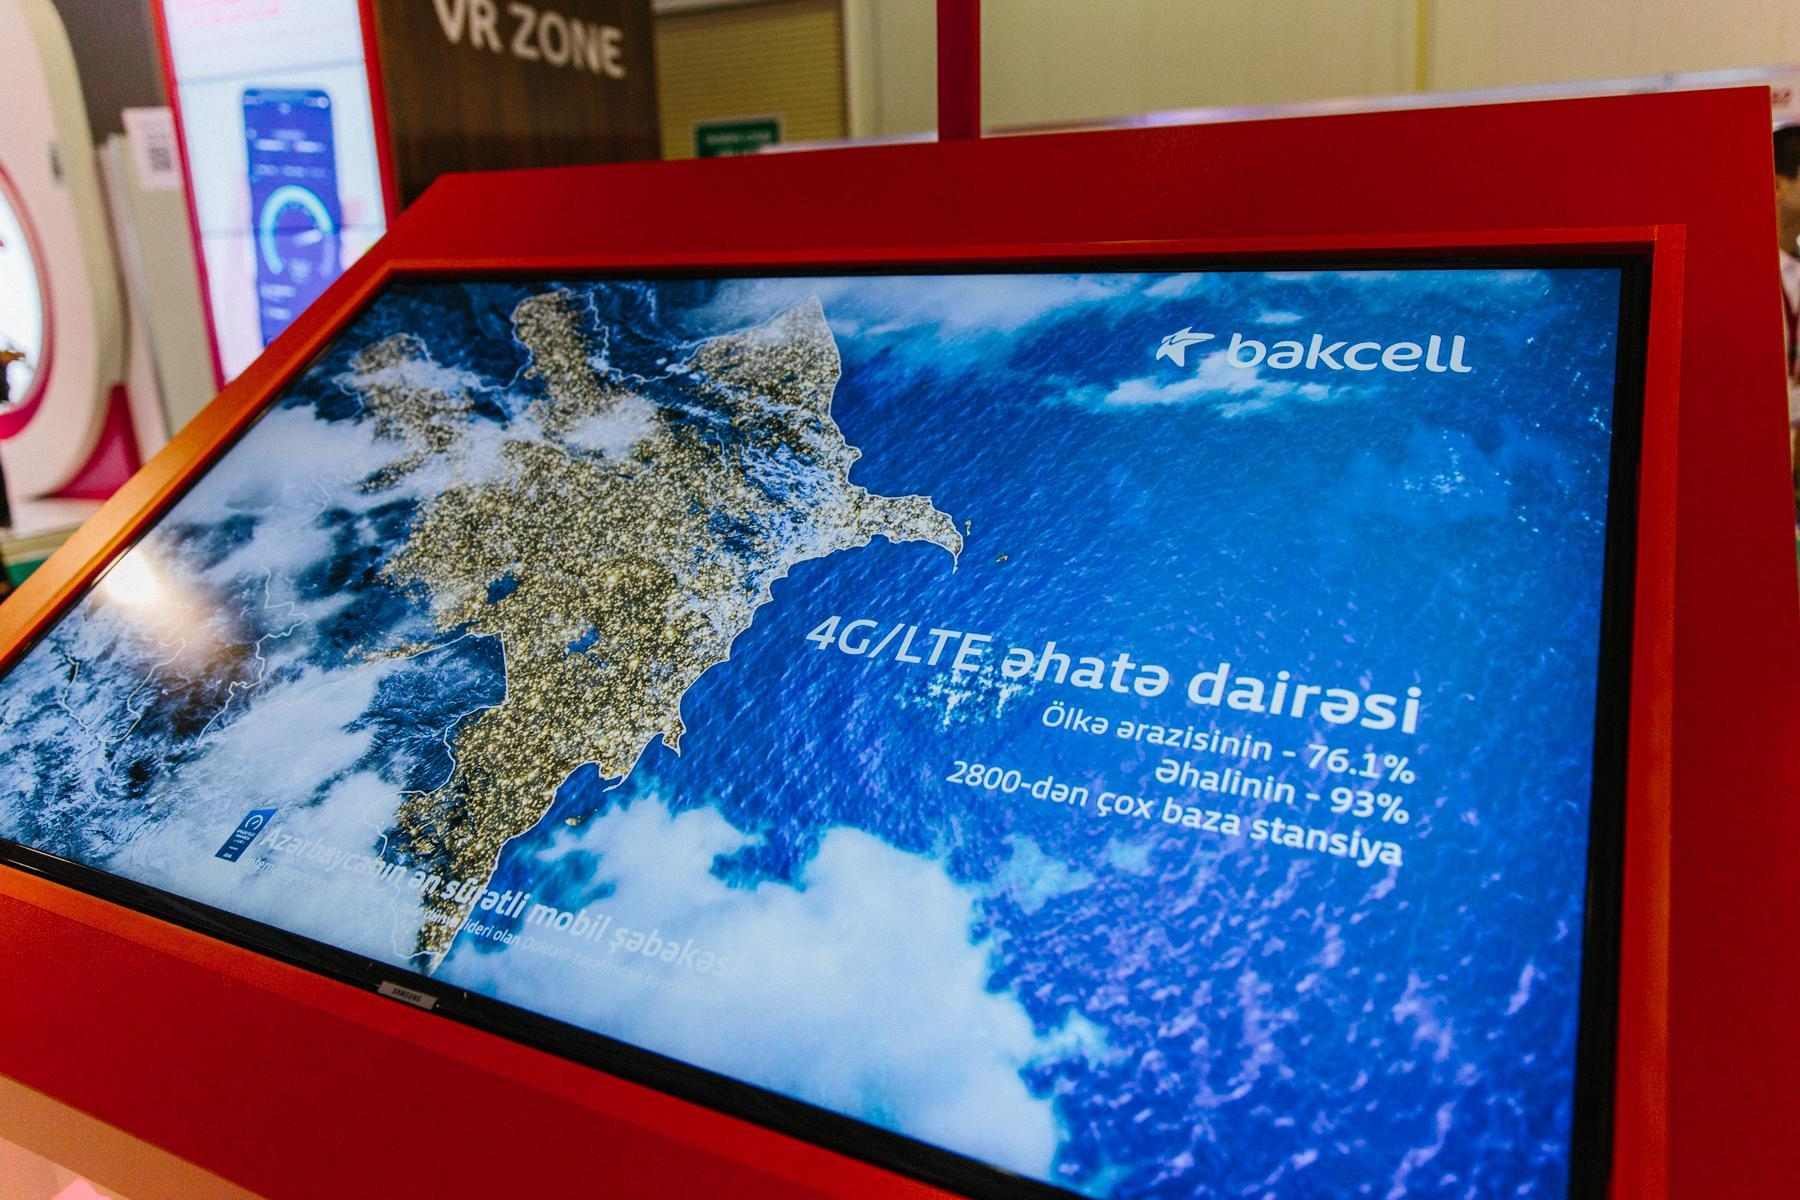 Bakcell at Bakutel 2019: network superiority and best customer experience (PHOTO)